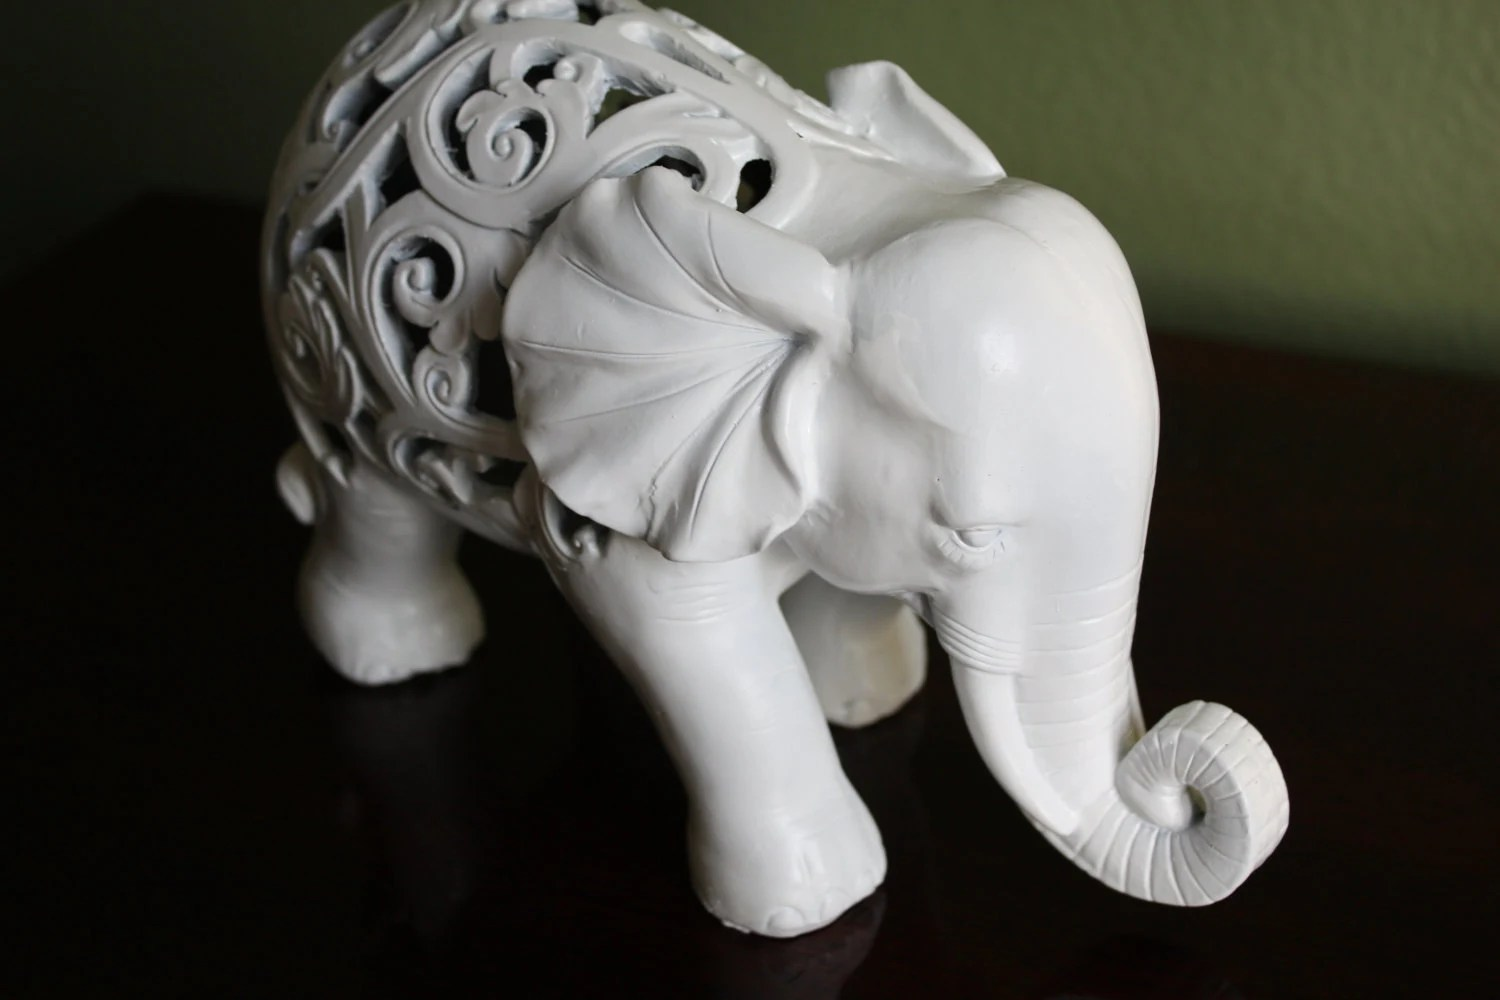 Animal Figurines Home Decor Ornate Elephant Figurine Home Decor Animal Decor